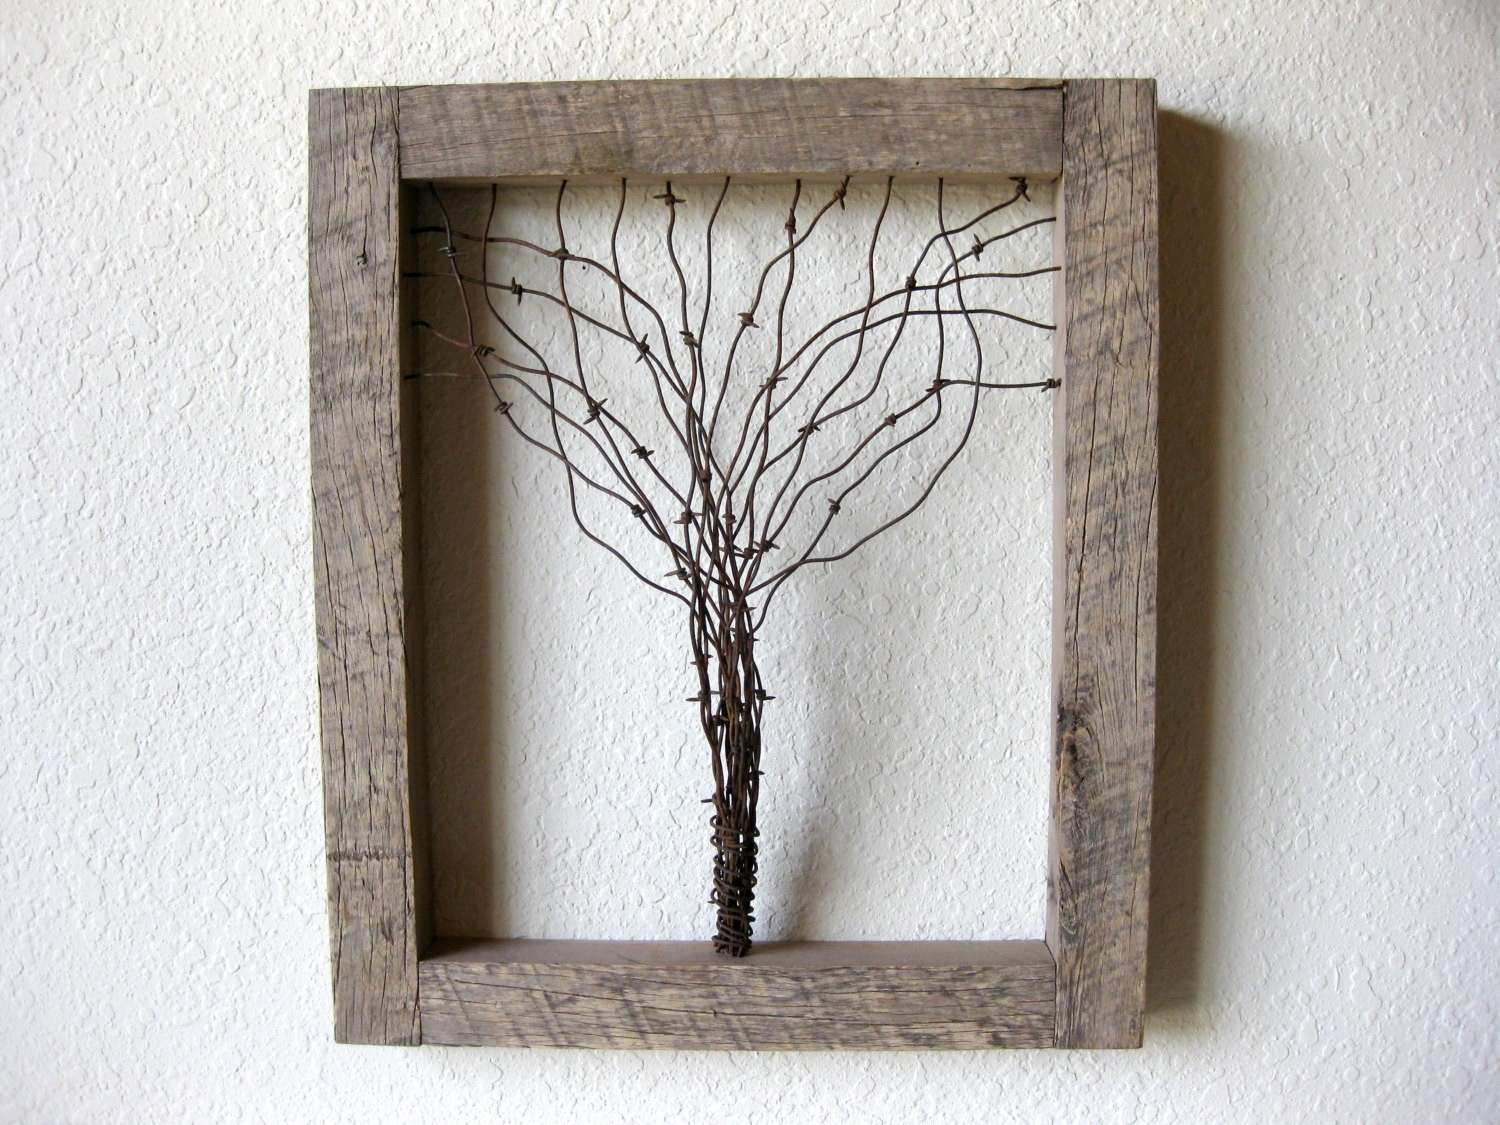 Awesome Barbed Wire Identification Ornament - Wiring Standart ...